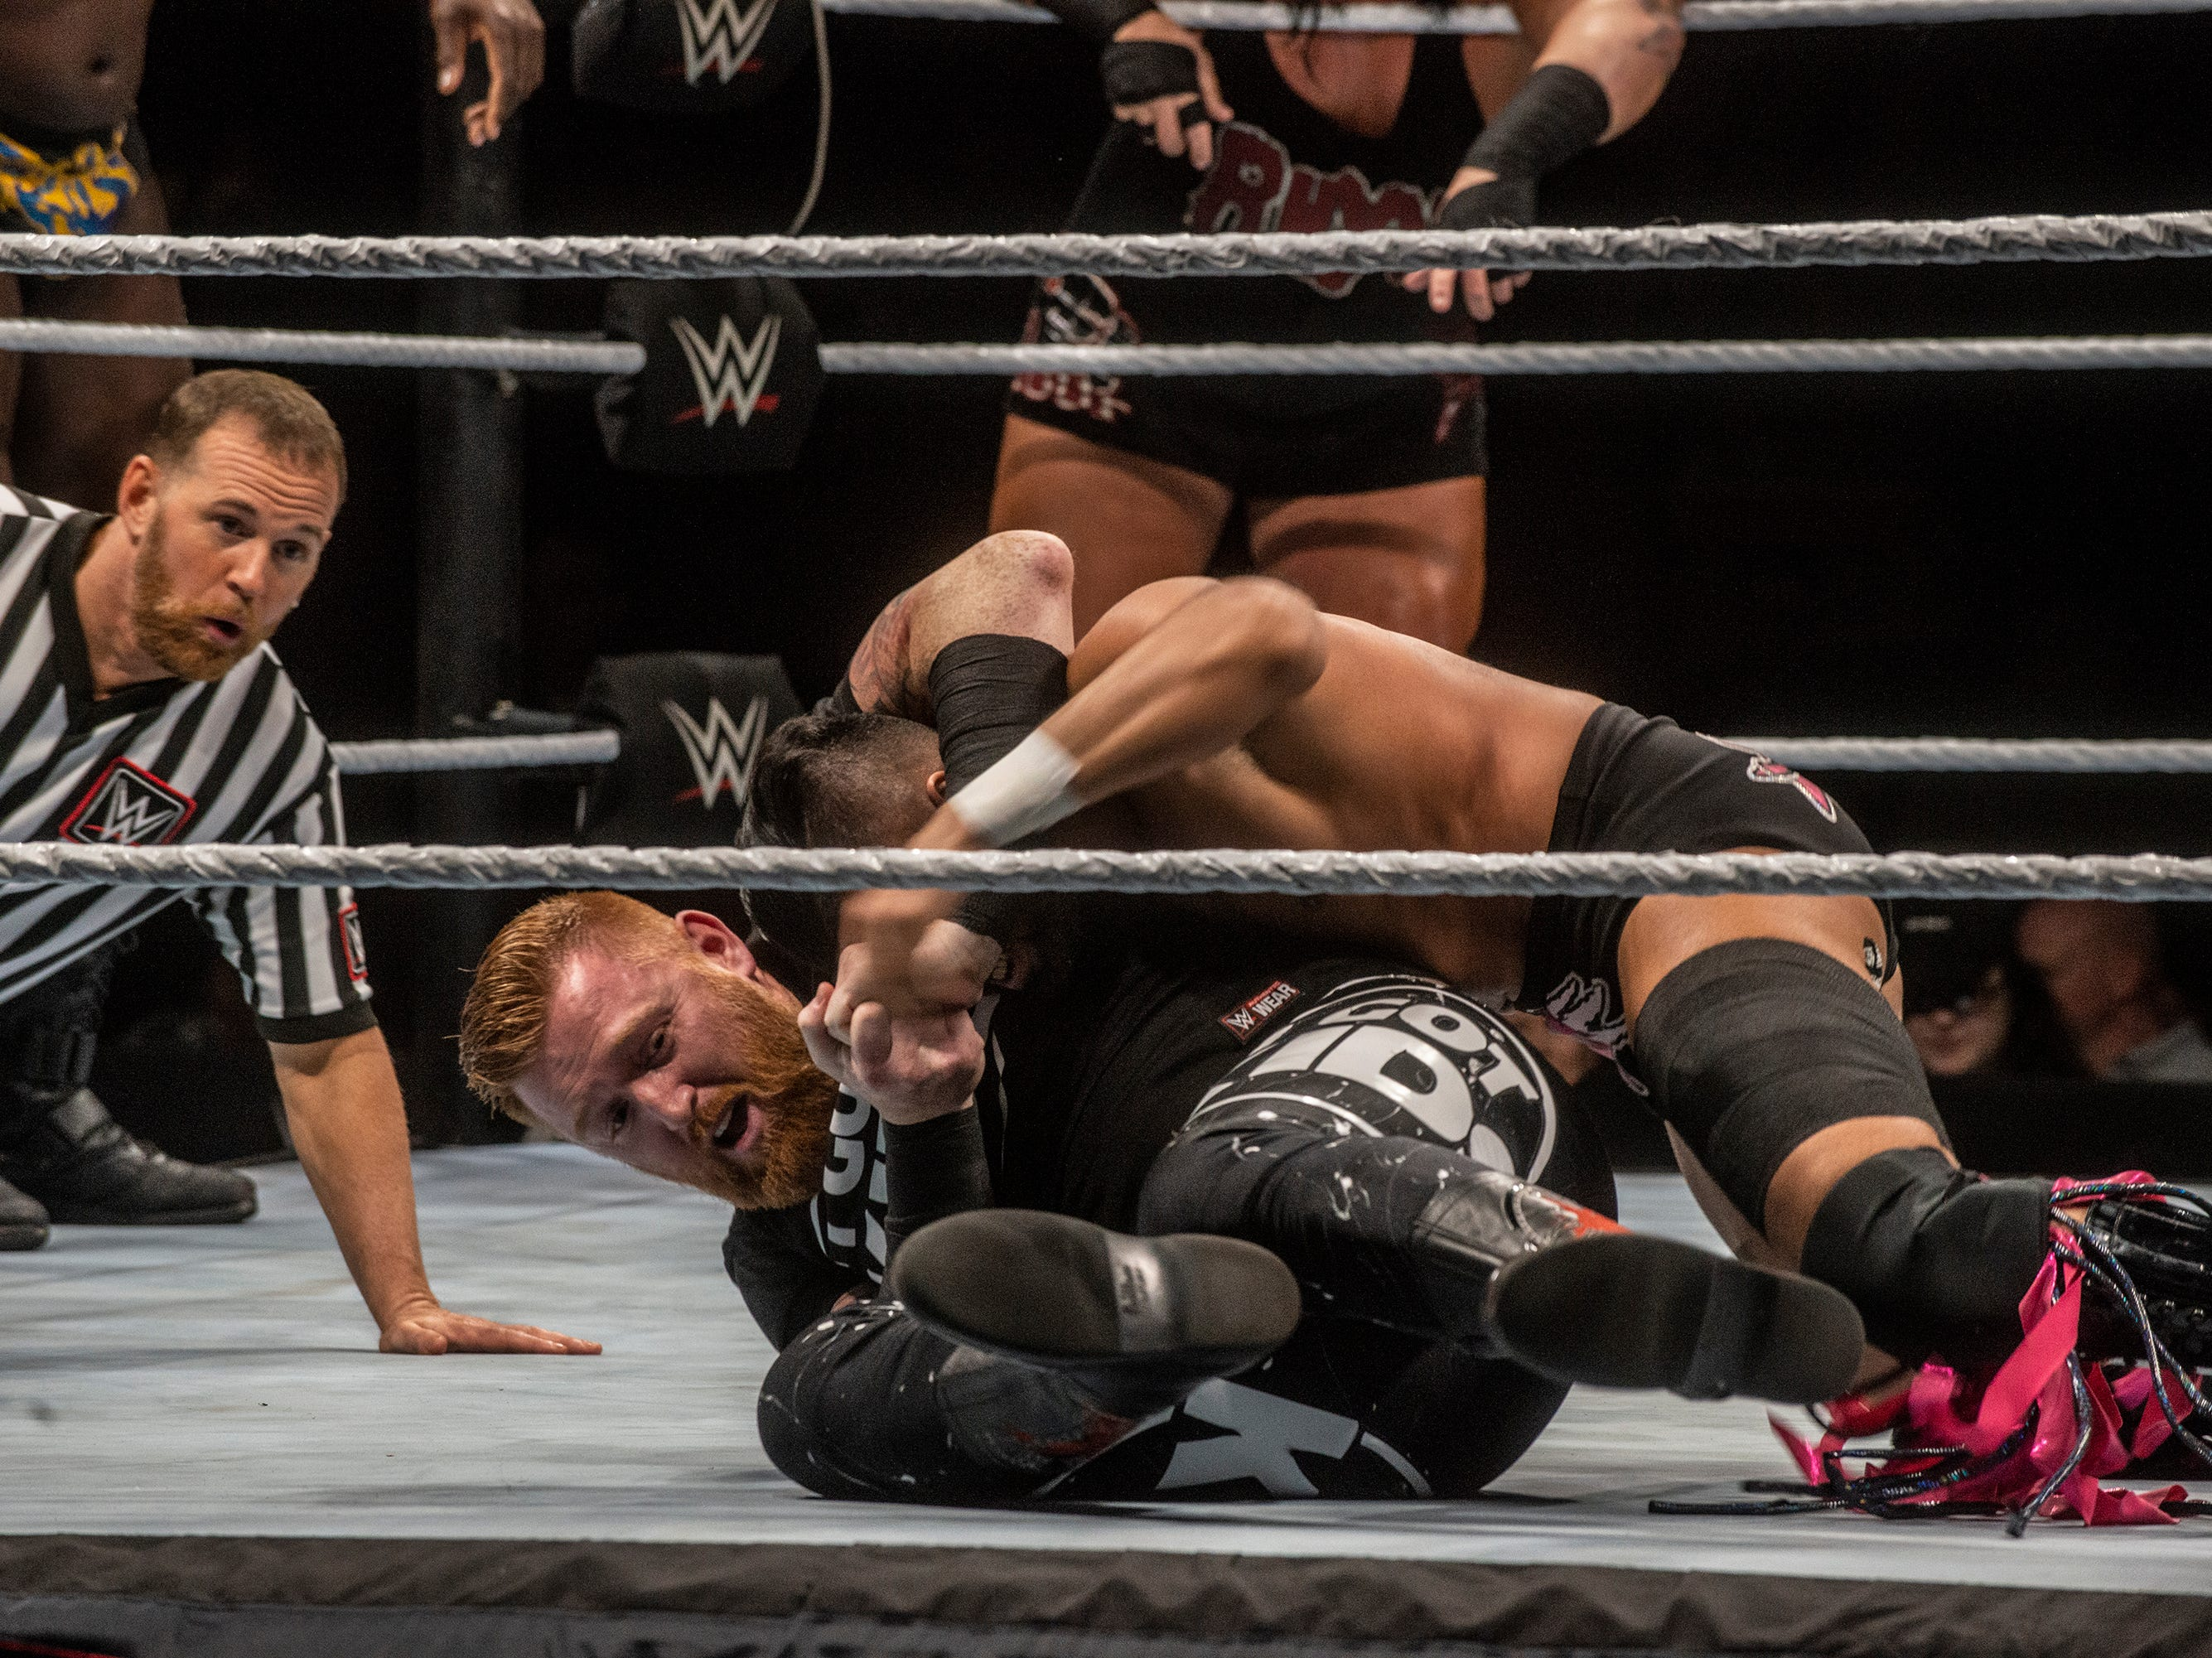 The Singh Brothers and Jinder Mahal in a six man tag team match against Titus O'Neil, Heath Slater and Rhyno. WWE Live Road to Wrestlemania came to Garrett Coliseum in Montgomery on Sunday, Feb. 24, 2019.